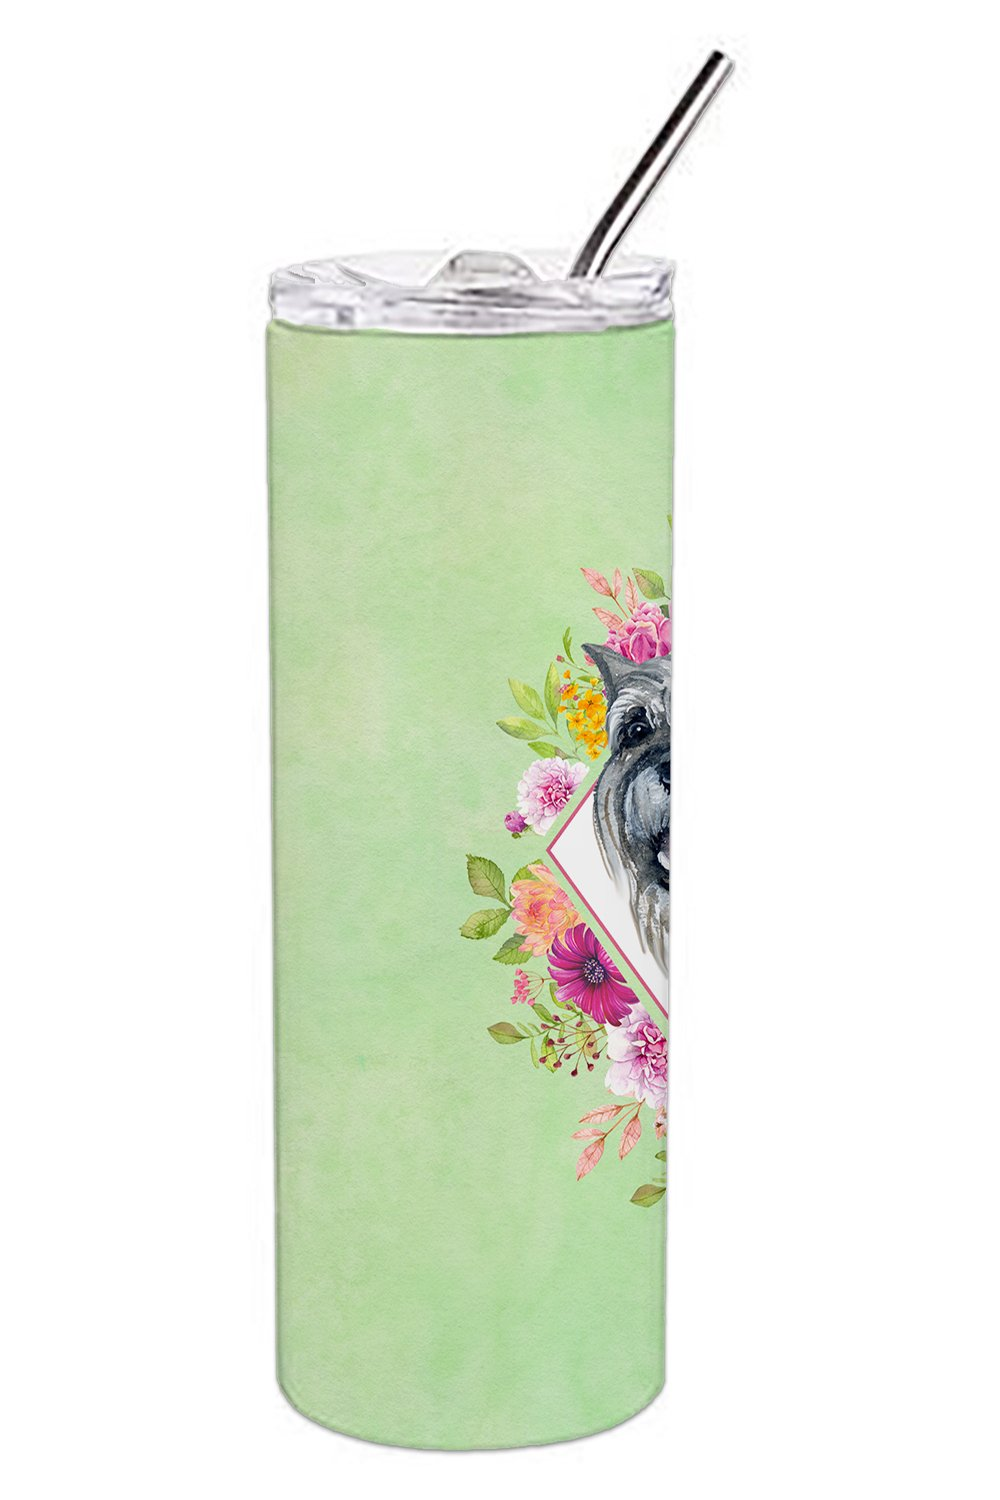 Schnauzer Green Flowers Double Walled Stainless Steel 20 oz Skinny Tumbler CK4339TBL20 by Caroline's Treasures